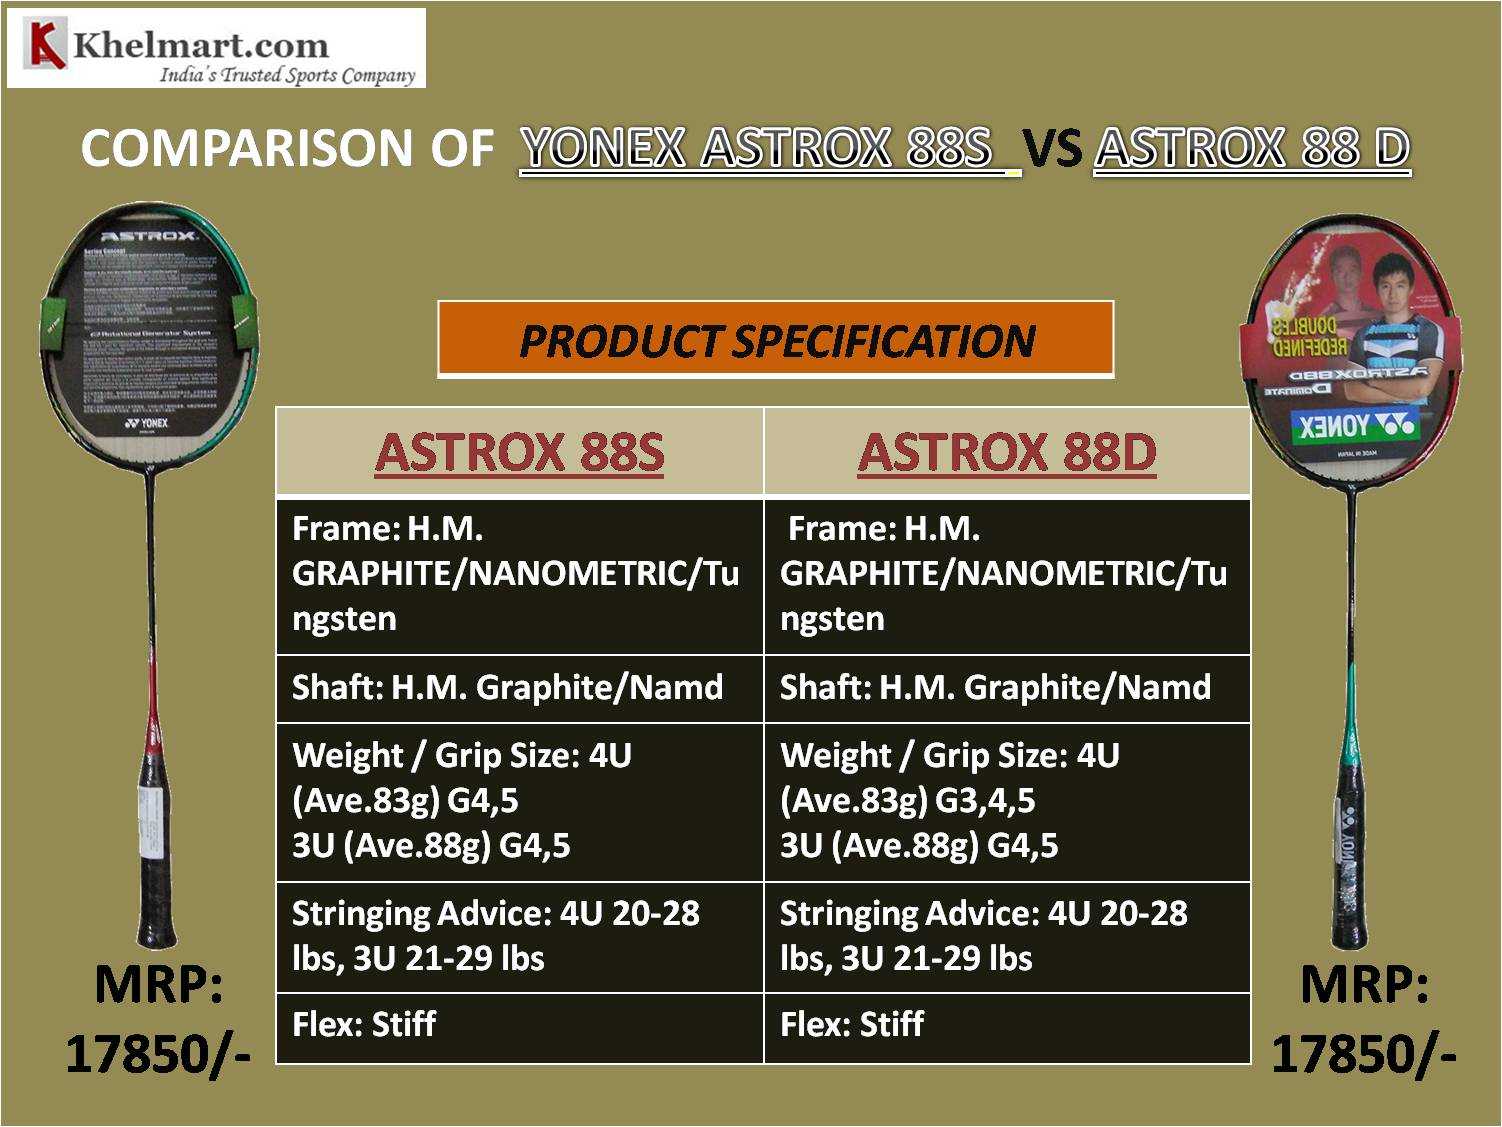 SPECIFICATION OF YONEX ASTROX 88S VS ASTROX 88 D